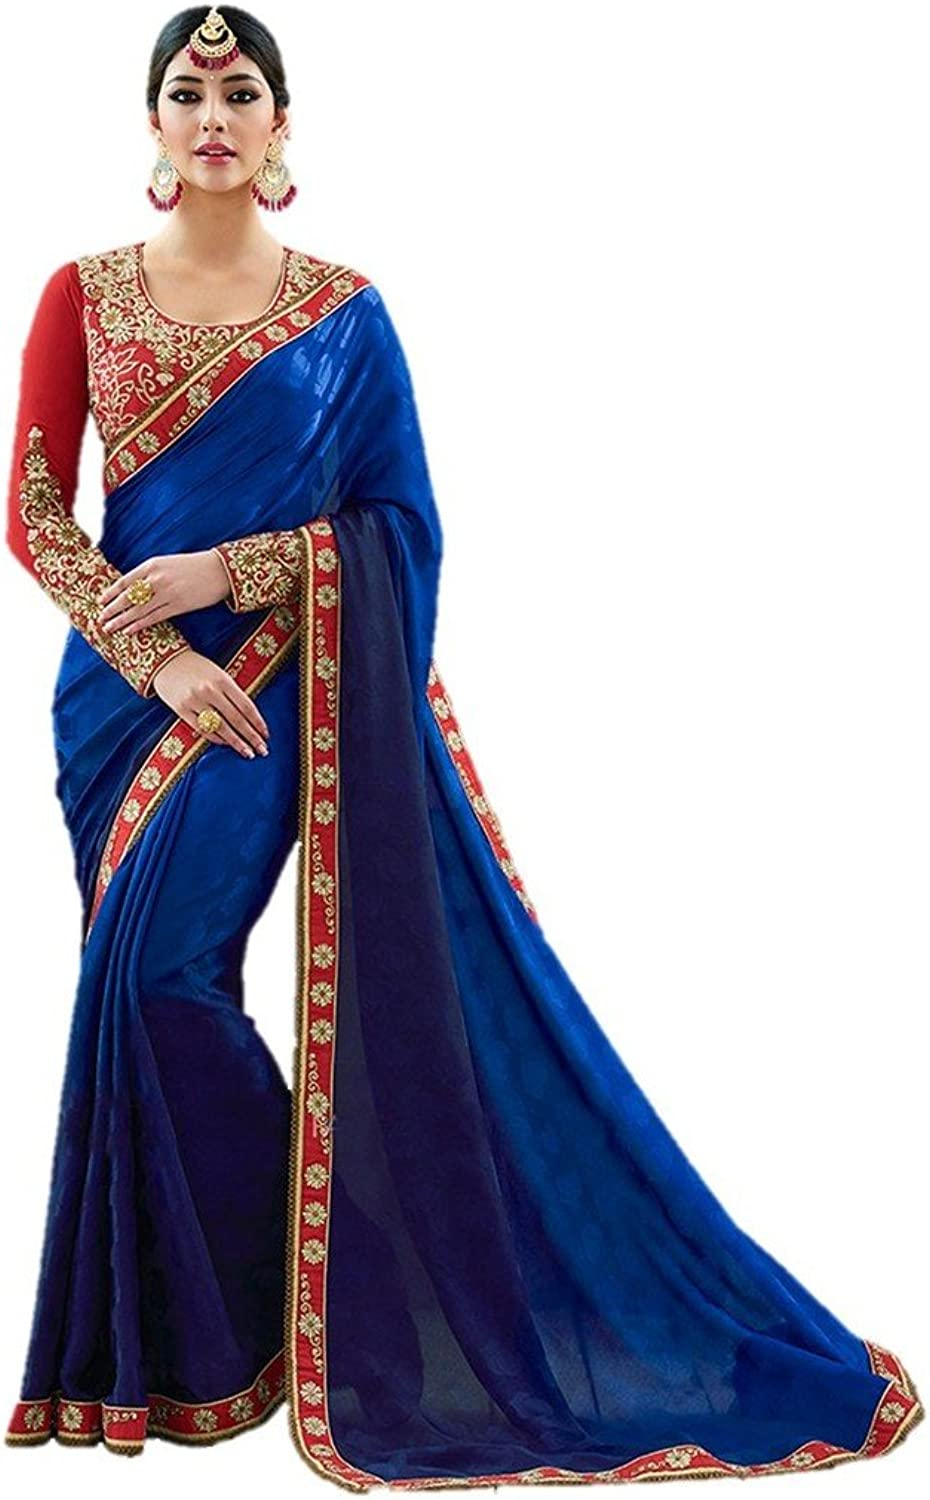 EthnicWear Traditional Art Silk bluee color Printed Designer Festival Reception Party Wear Lace Resham Work Sari Saree